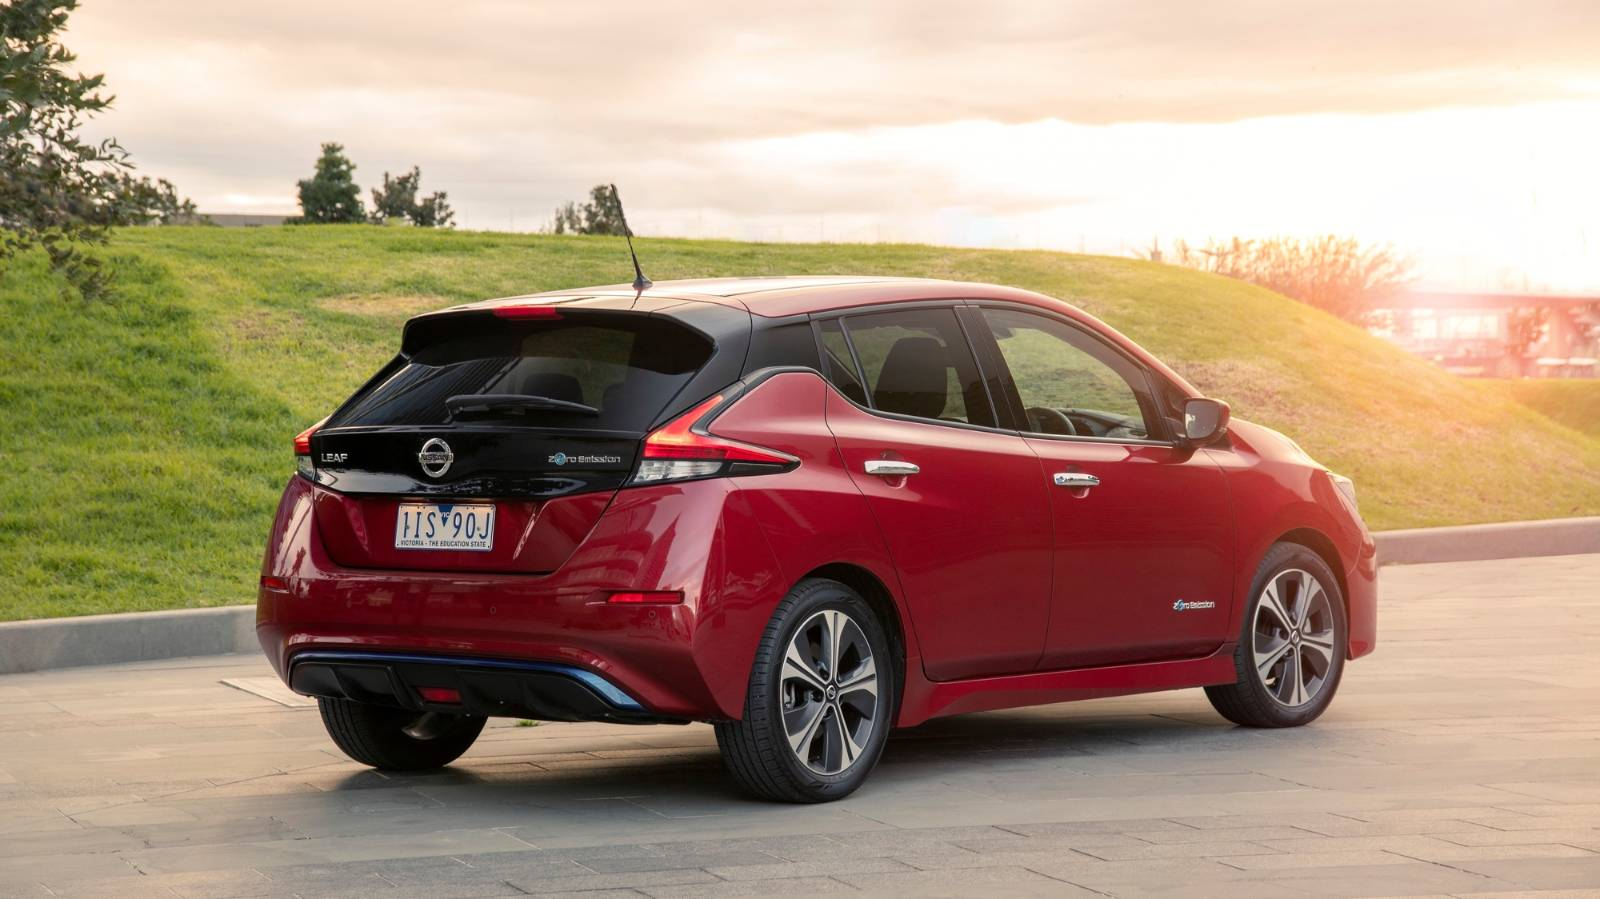 Nissan is going to kill the Leaf as we know it